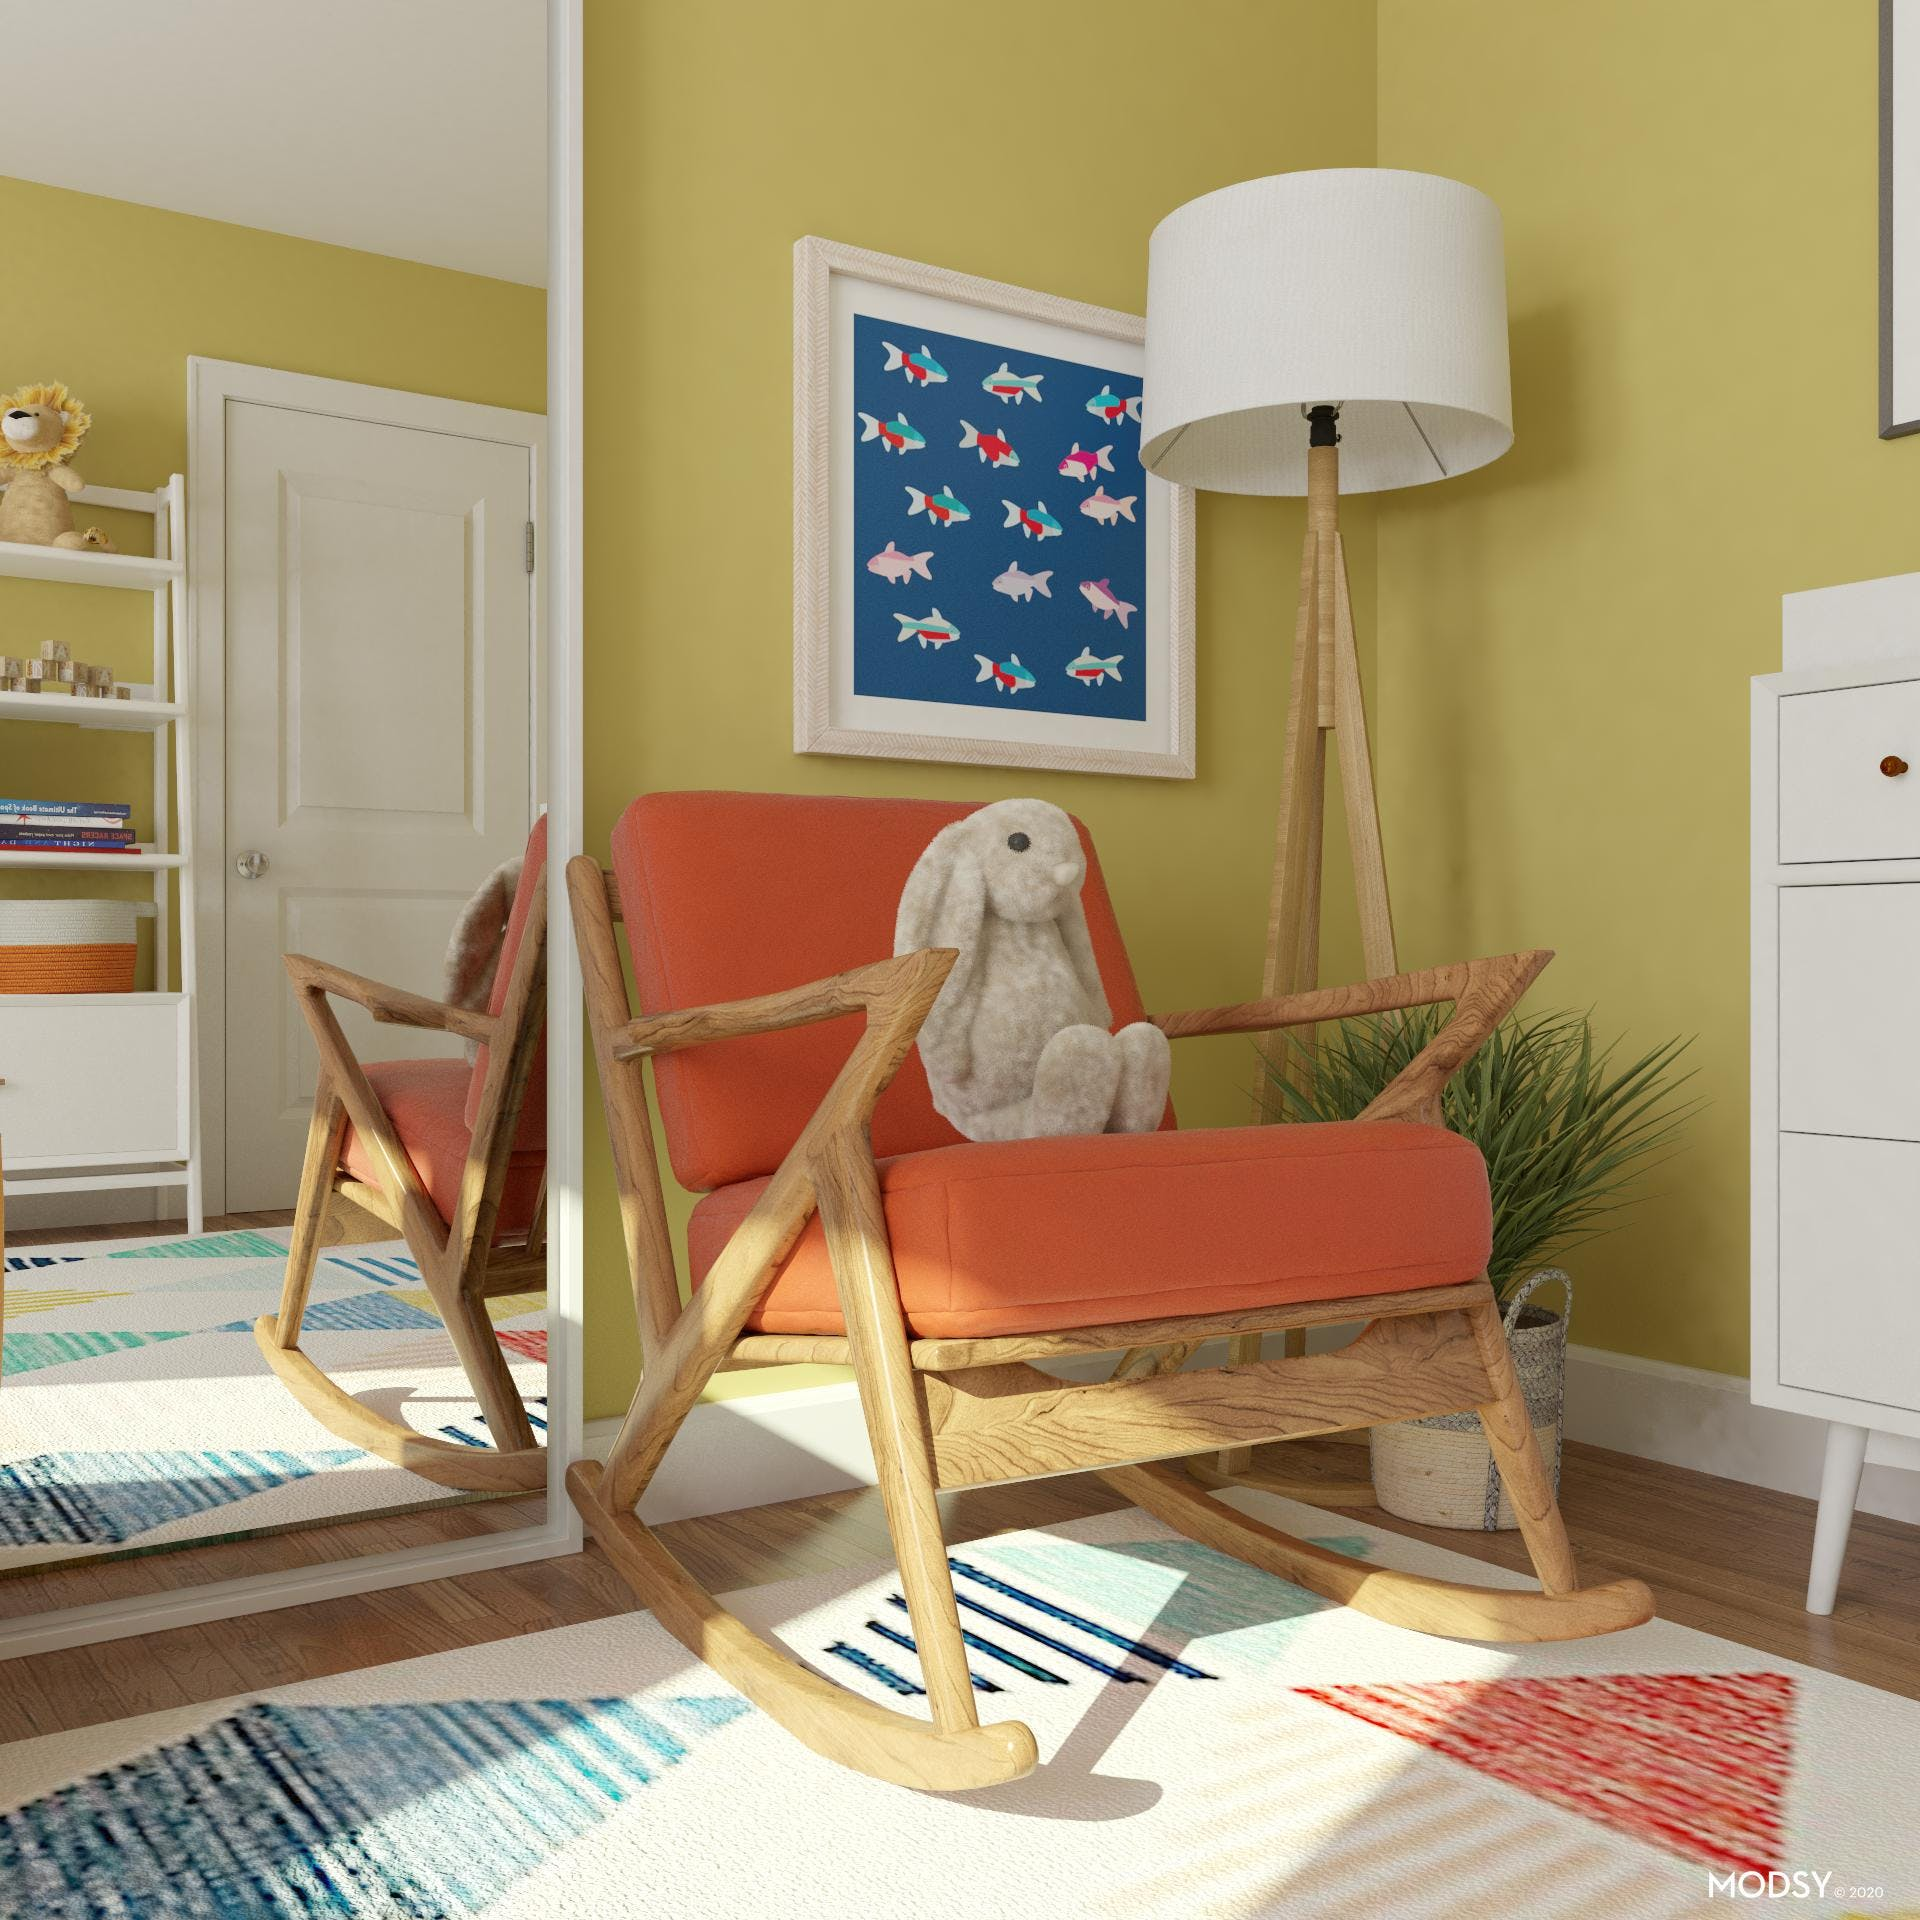 Cozy Rocking Chair in Multi Colored Nursery